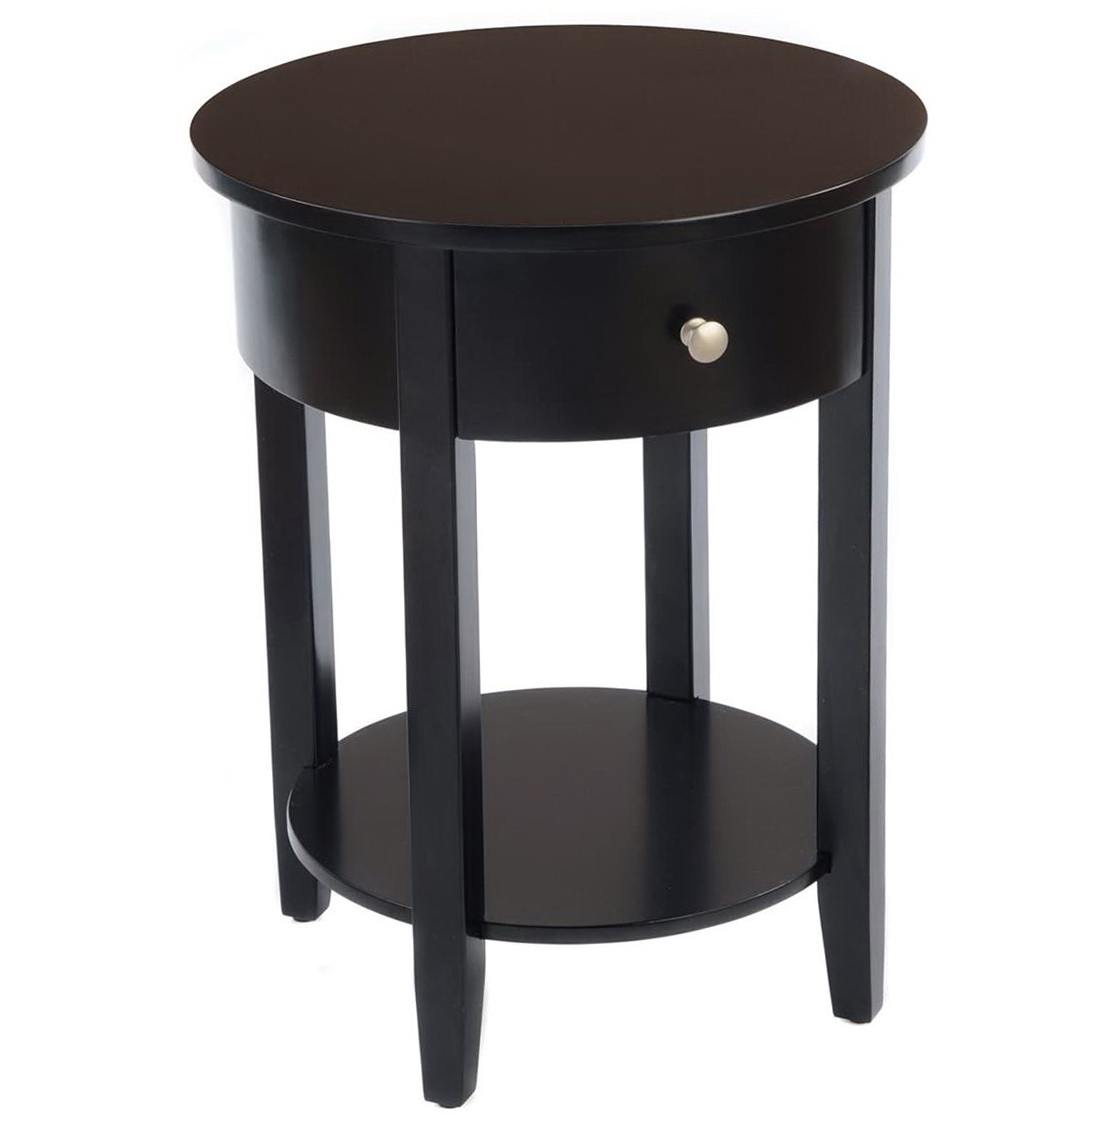 Round Side Tables For Living Room Home Design Ideas